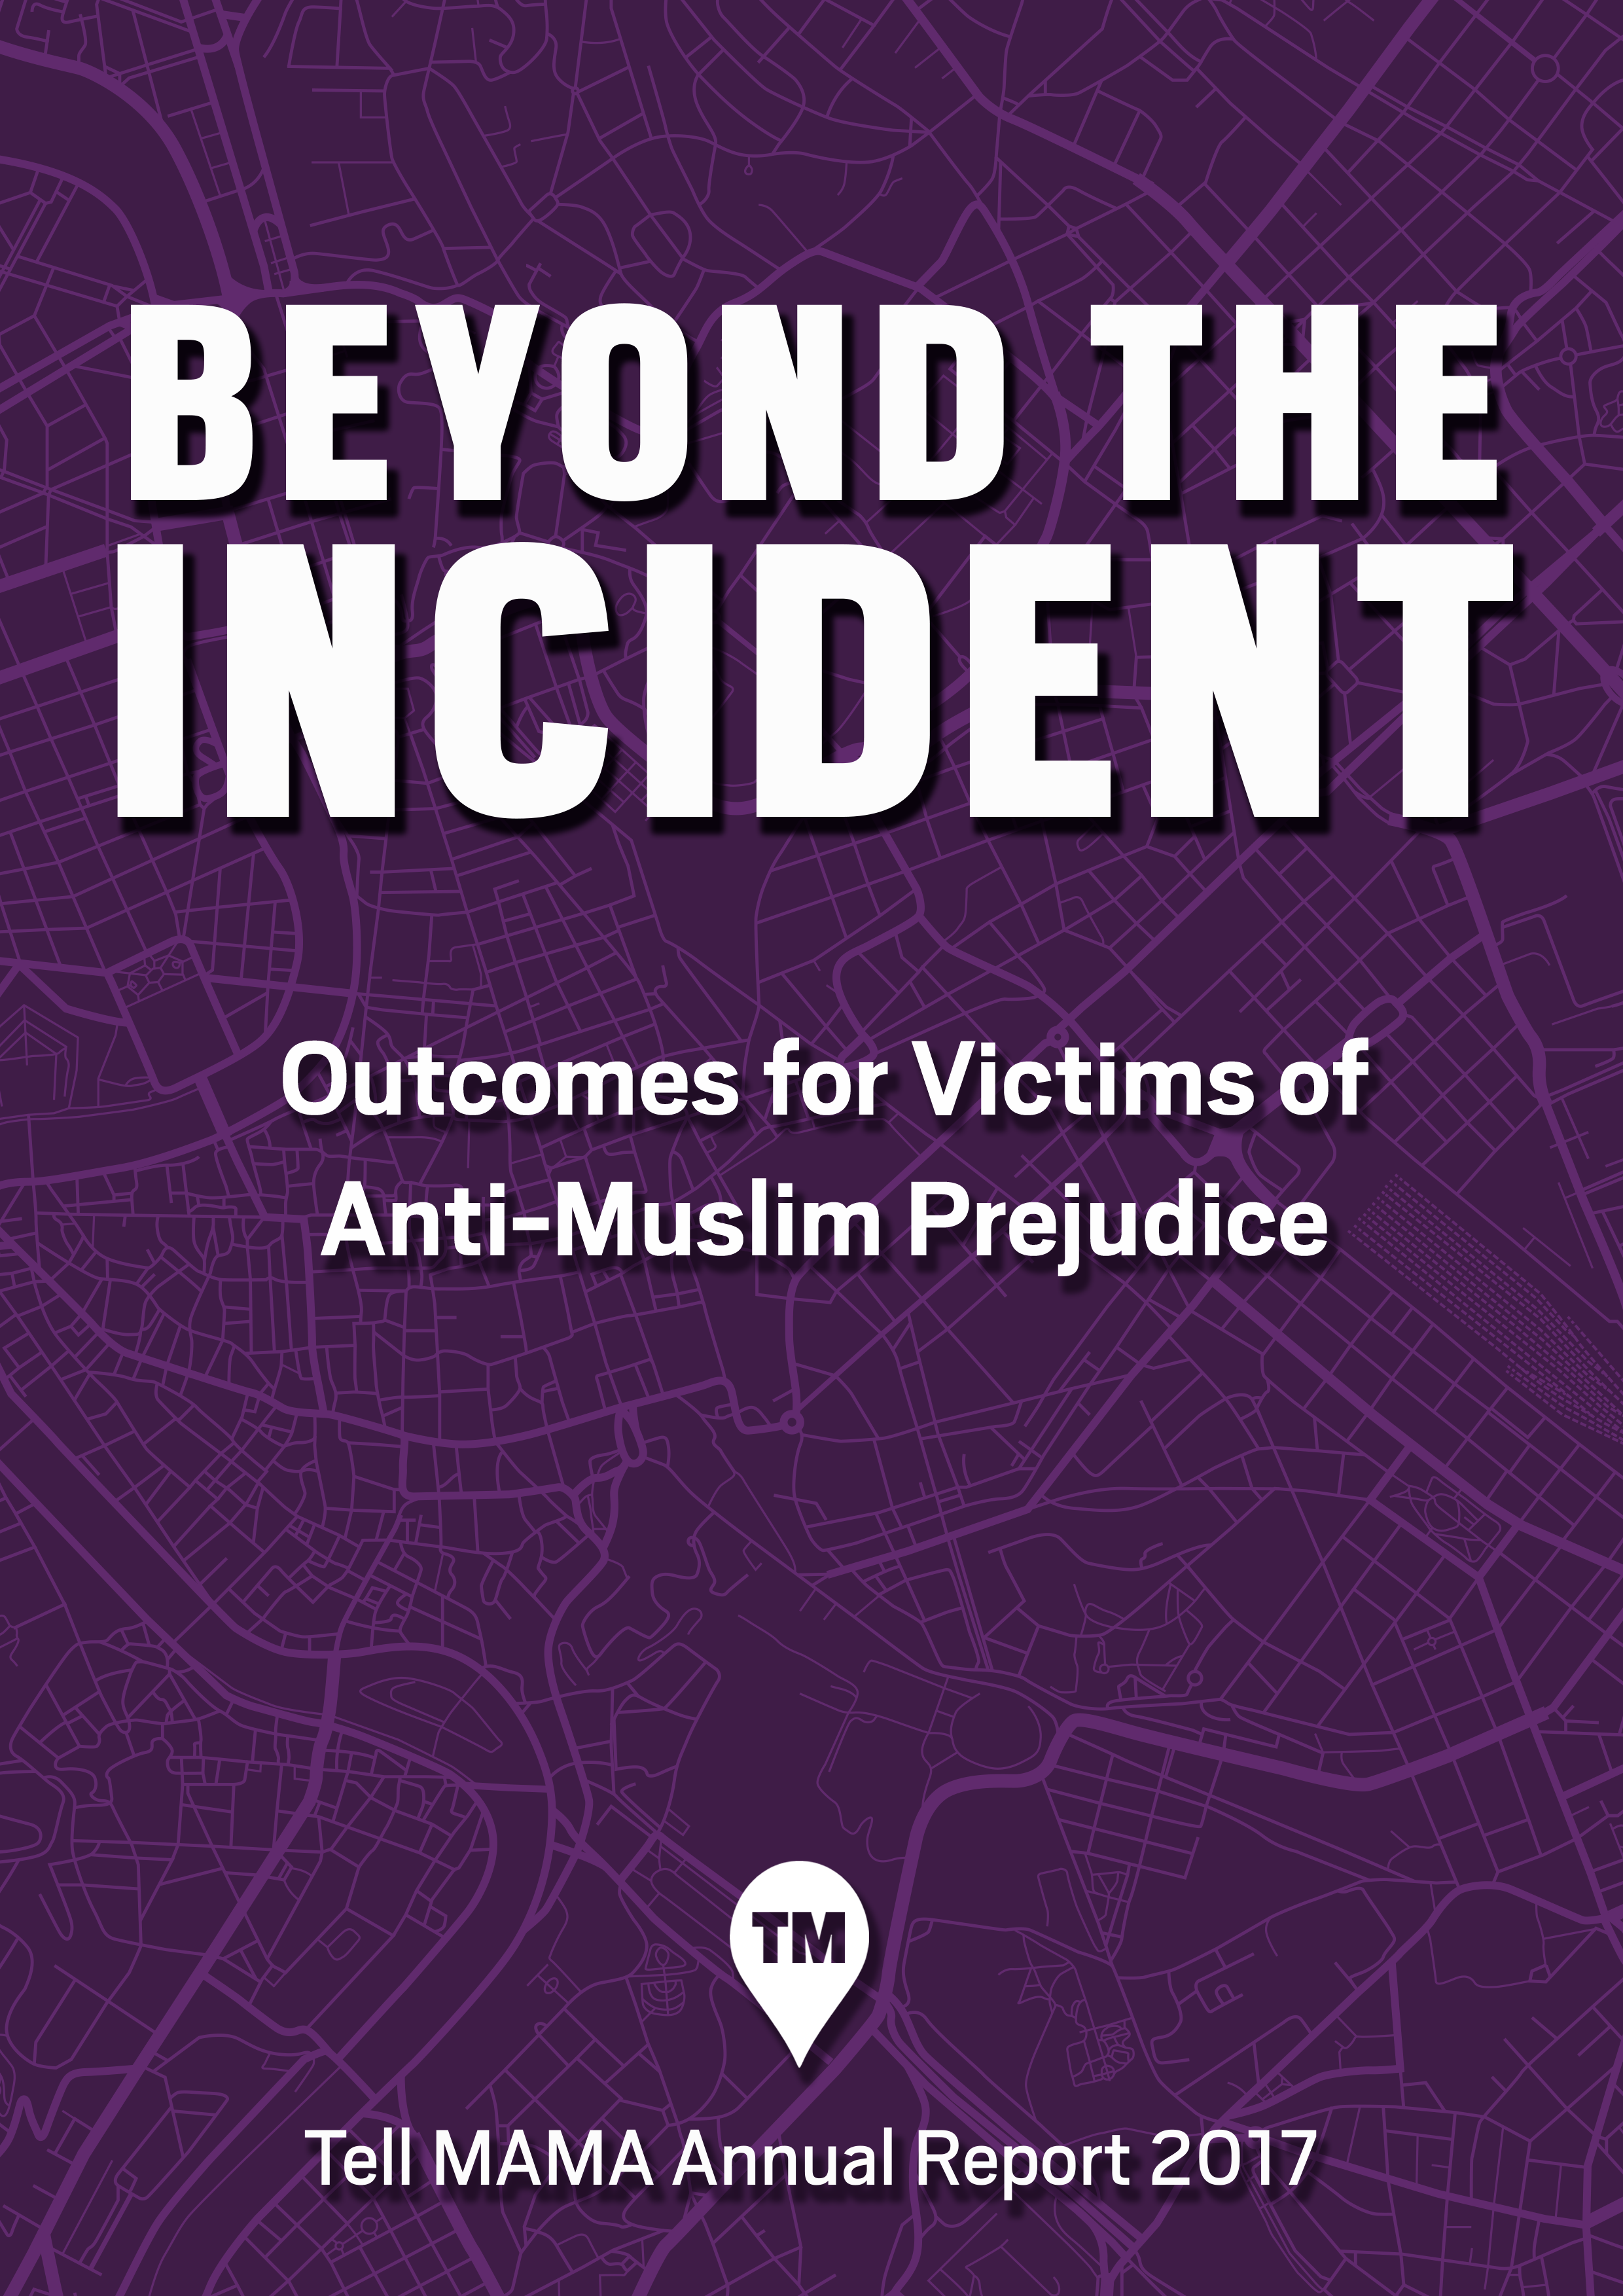 Tell MAMA Annual Report 2017: 'Beyond the Incident'